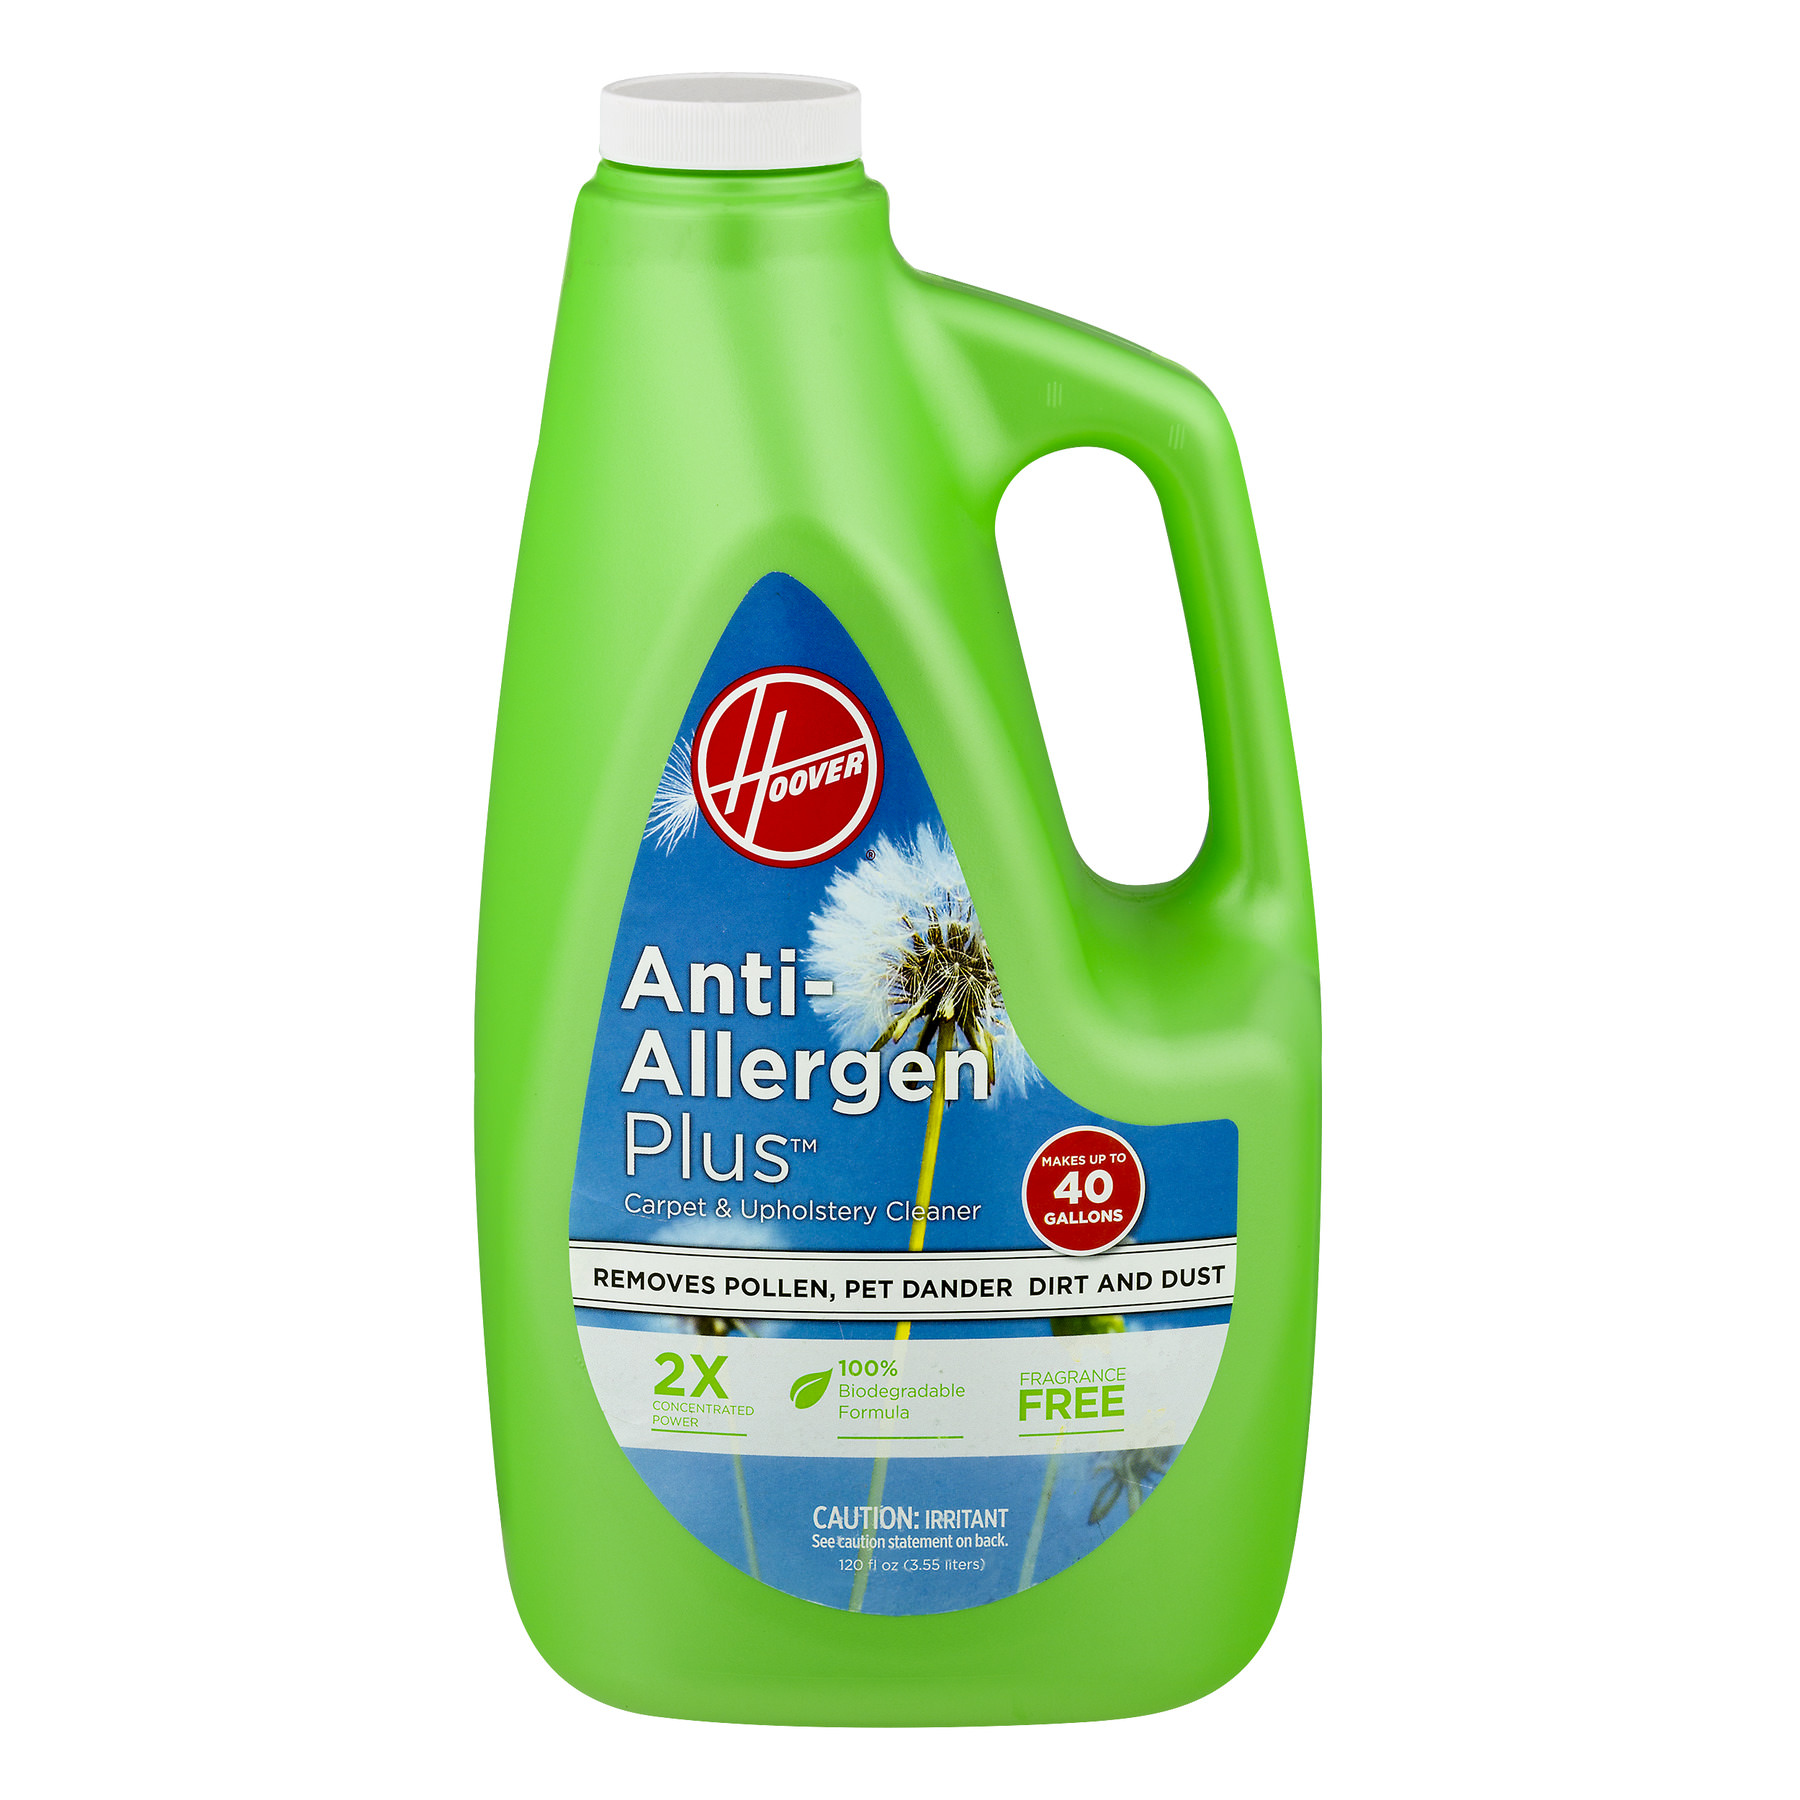 Anti-Allergen Plus Carpet & Upholstery Cleaner